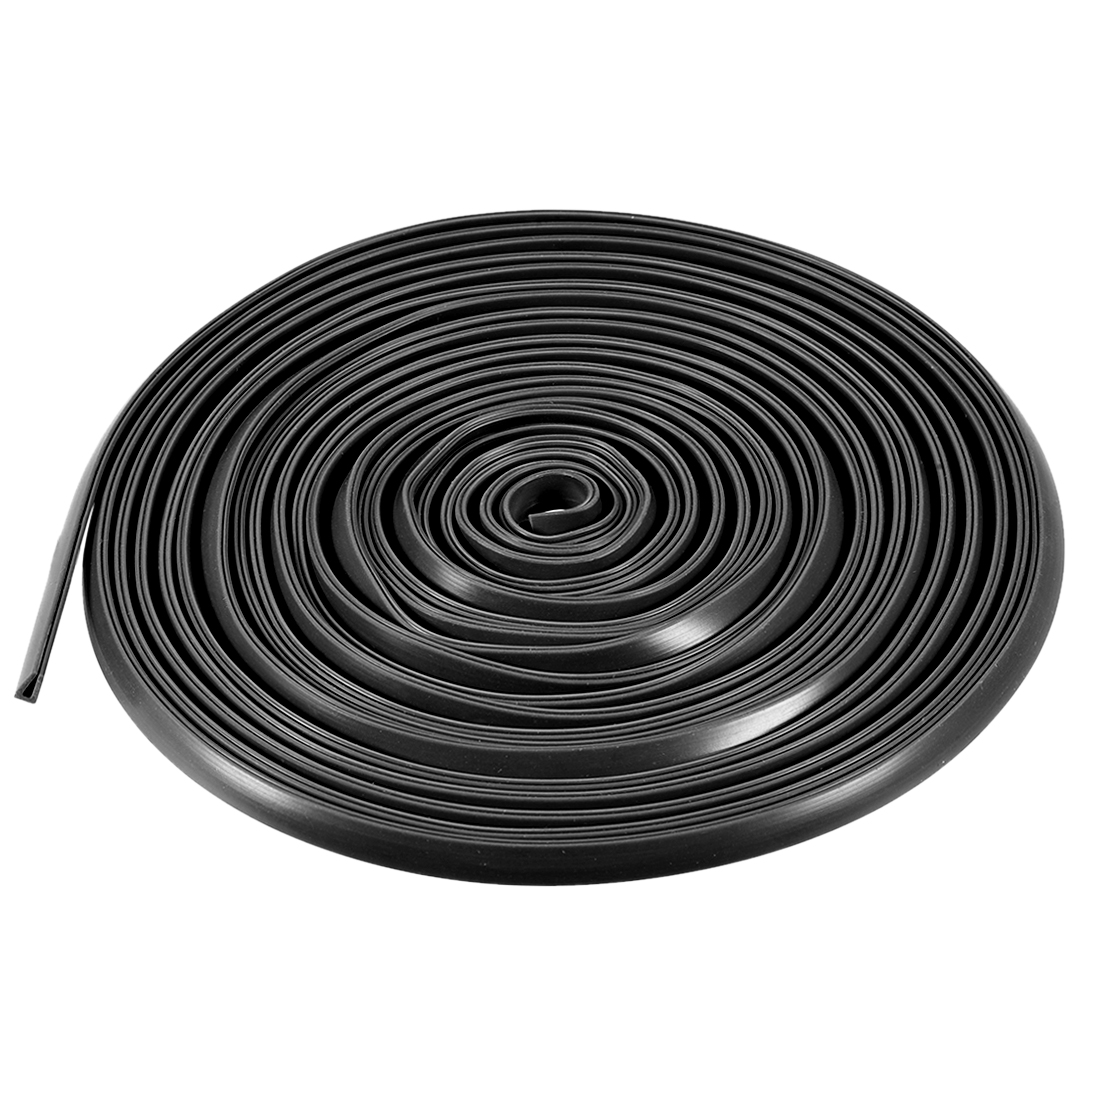 Uxcell 5M/16.4Ft Length Edge Trim U Seal Extrusion U Channel Edge Protector Sheet Fits 0.1-1.5mm Edge Silicone Black